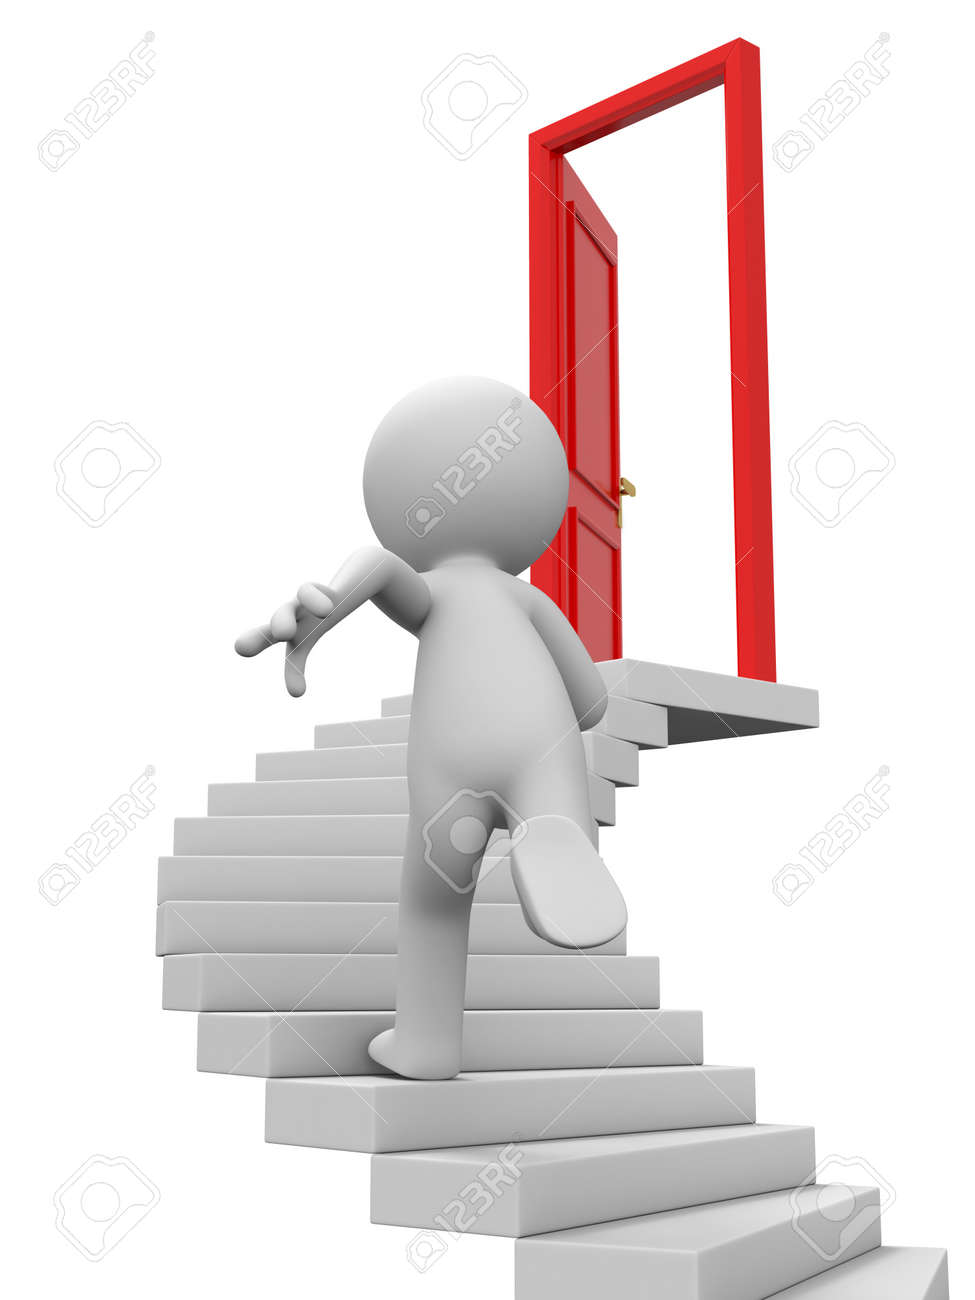 Door run stairs A person runs to a opened door on the stairs Stock Photo - 15457686